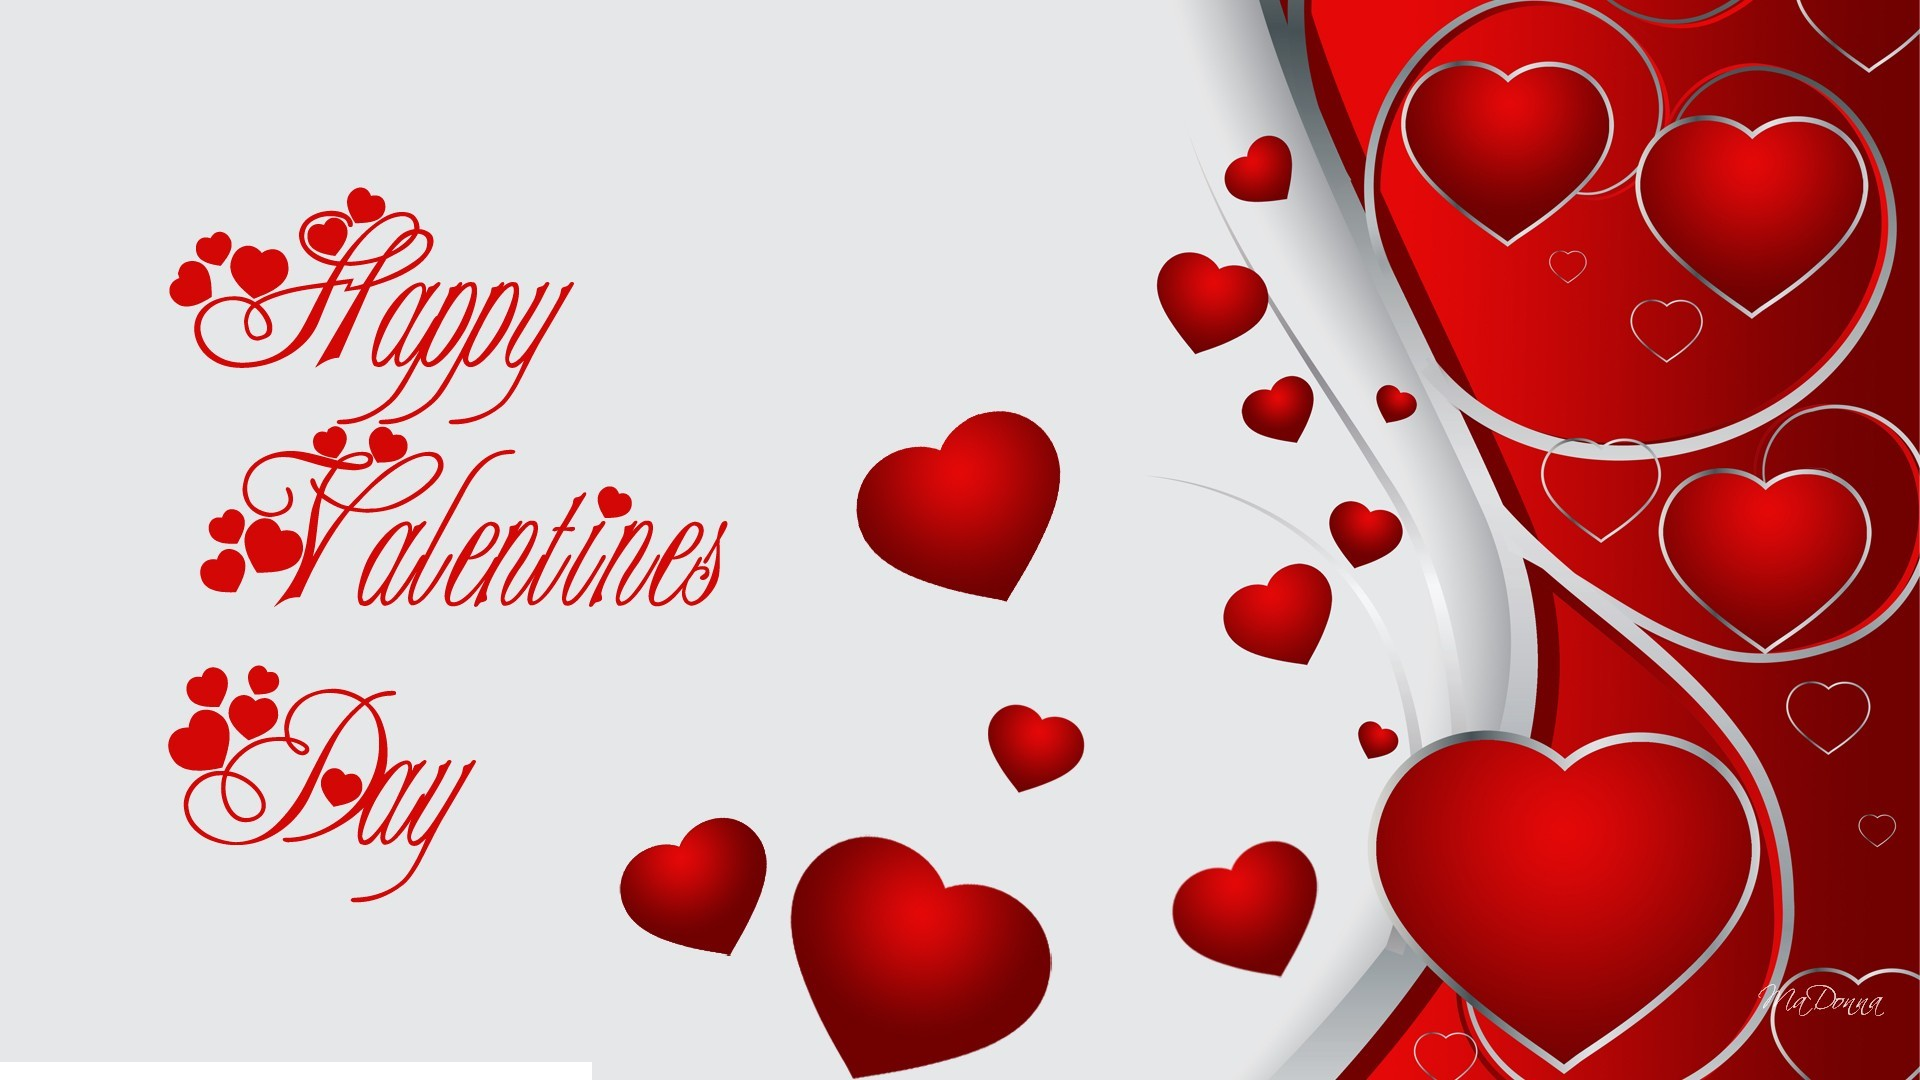 Happy Valentines Day Backgrounds ①